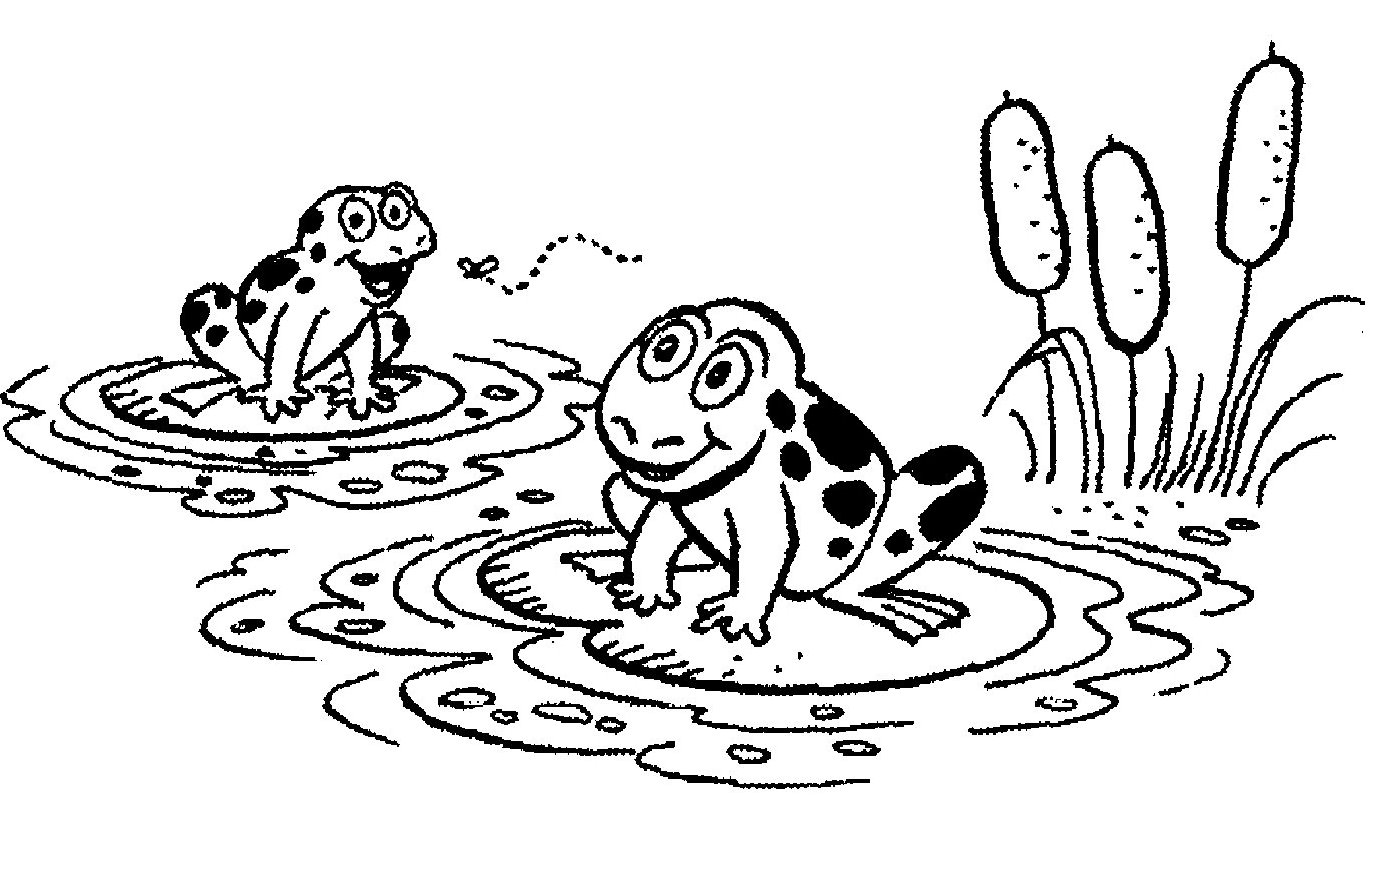 hight resolution of cute frog clipart black and white photo 11